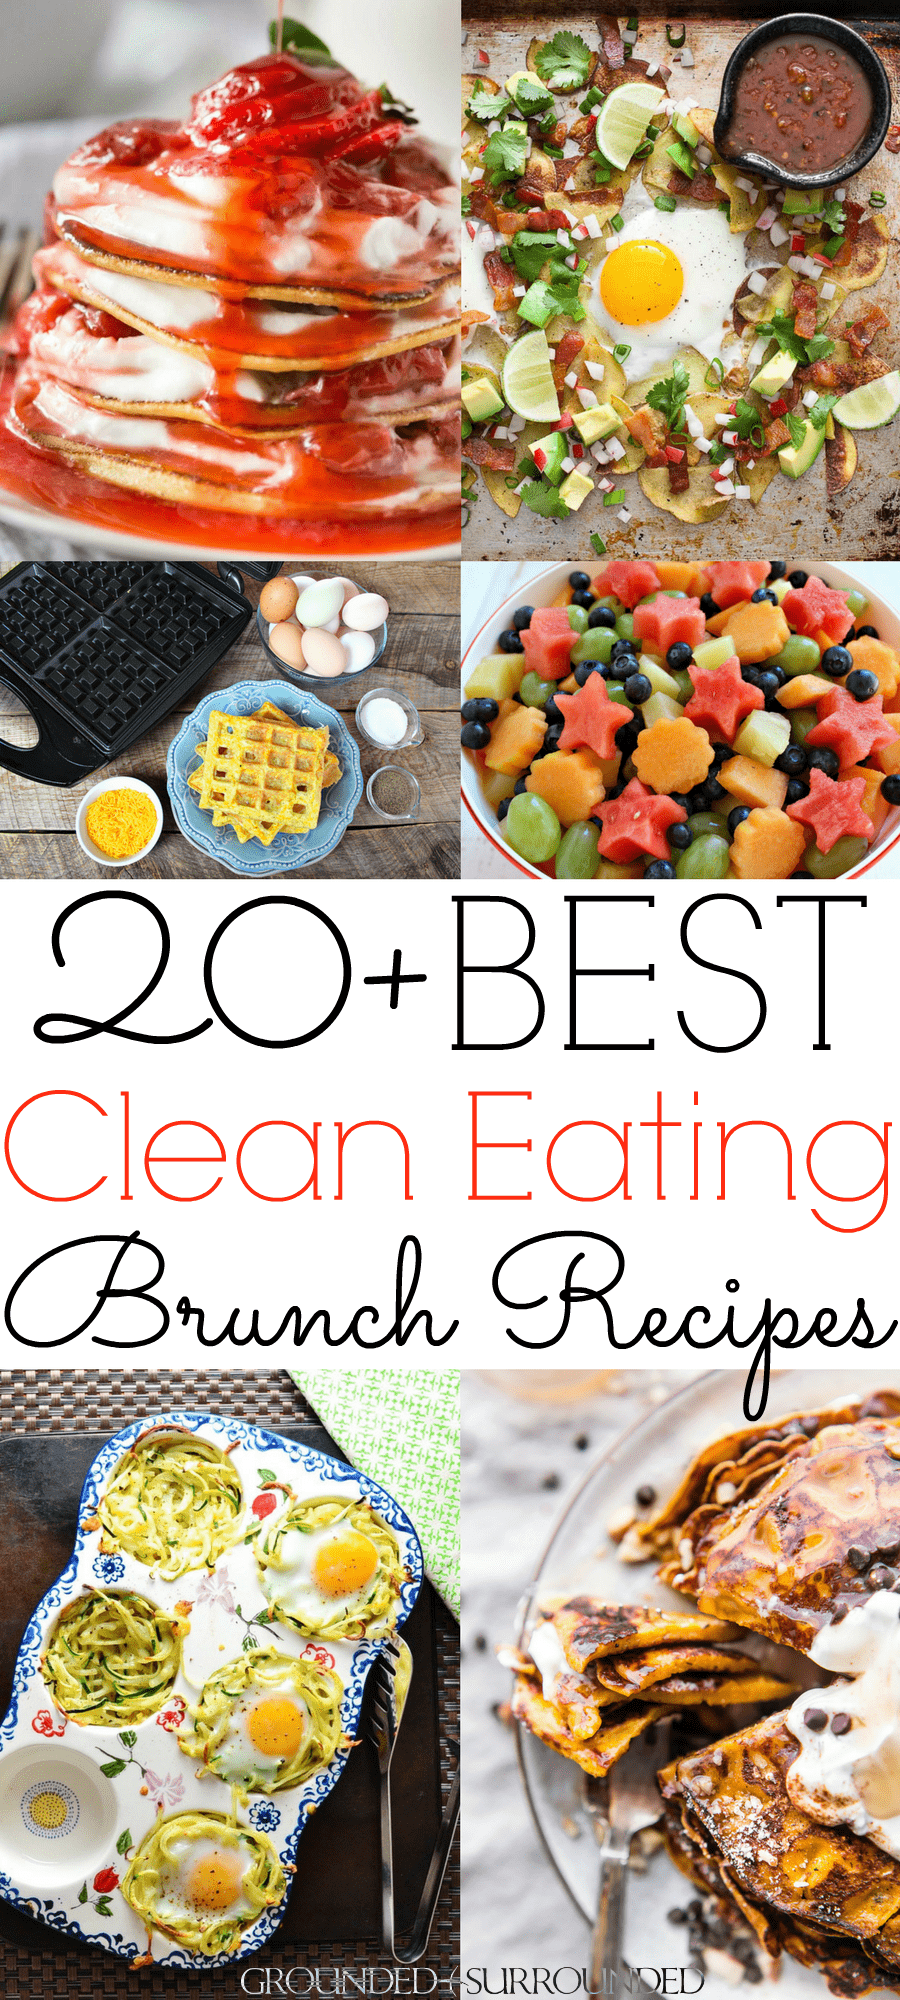 "The 20+ BEST Clean Eating Brunch Recipes | These healthy and gluten-free ideas will have you begging for seconds! This food menu has make ahead dishes, casseroles, waffles, pancakes, eggs, fruit salads, spinach salads, and easy ""clean"" bread recipes. Whether you are throwing a party or serving your family these Sunday morning low carb breakfasts are just the ticket to leave your tummy happy all day. Mothers Day 